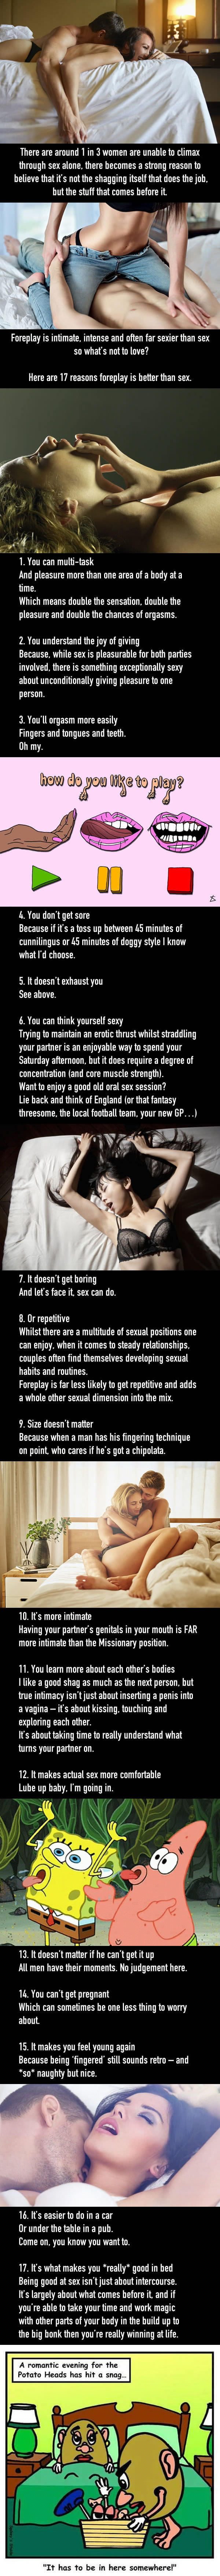 17 awesome reasons why foreplay is way better than sex